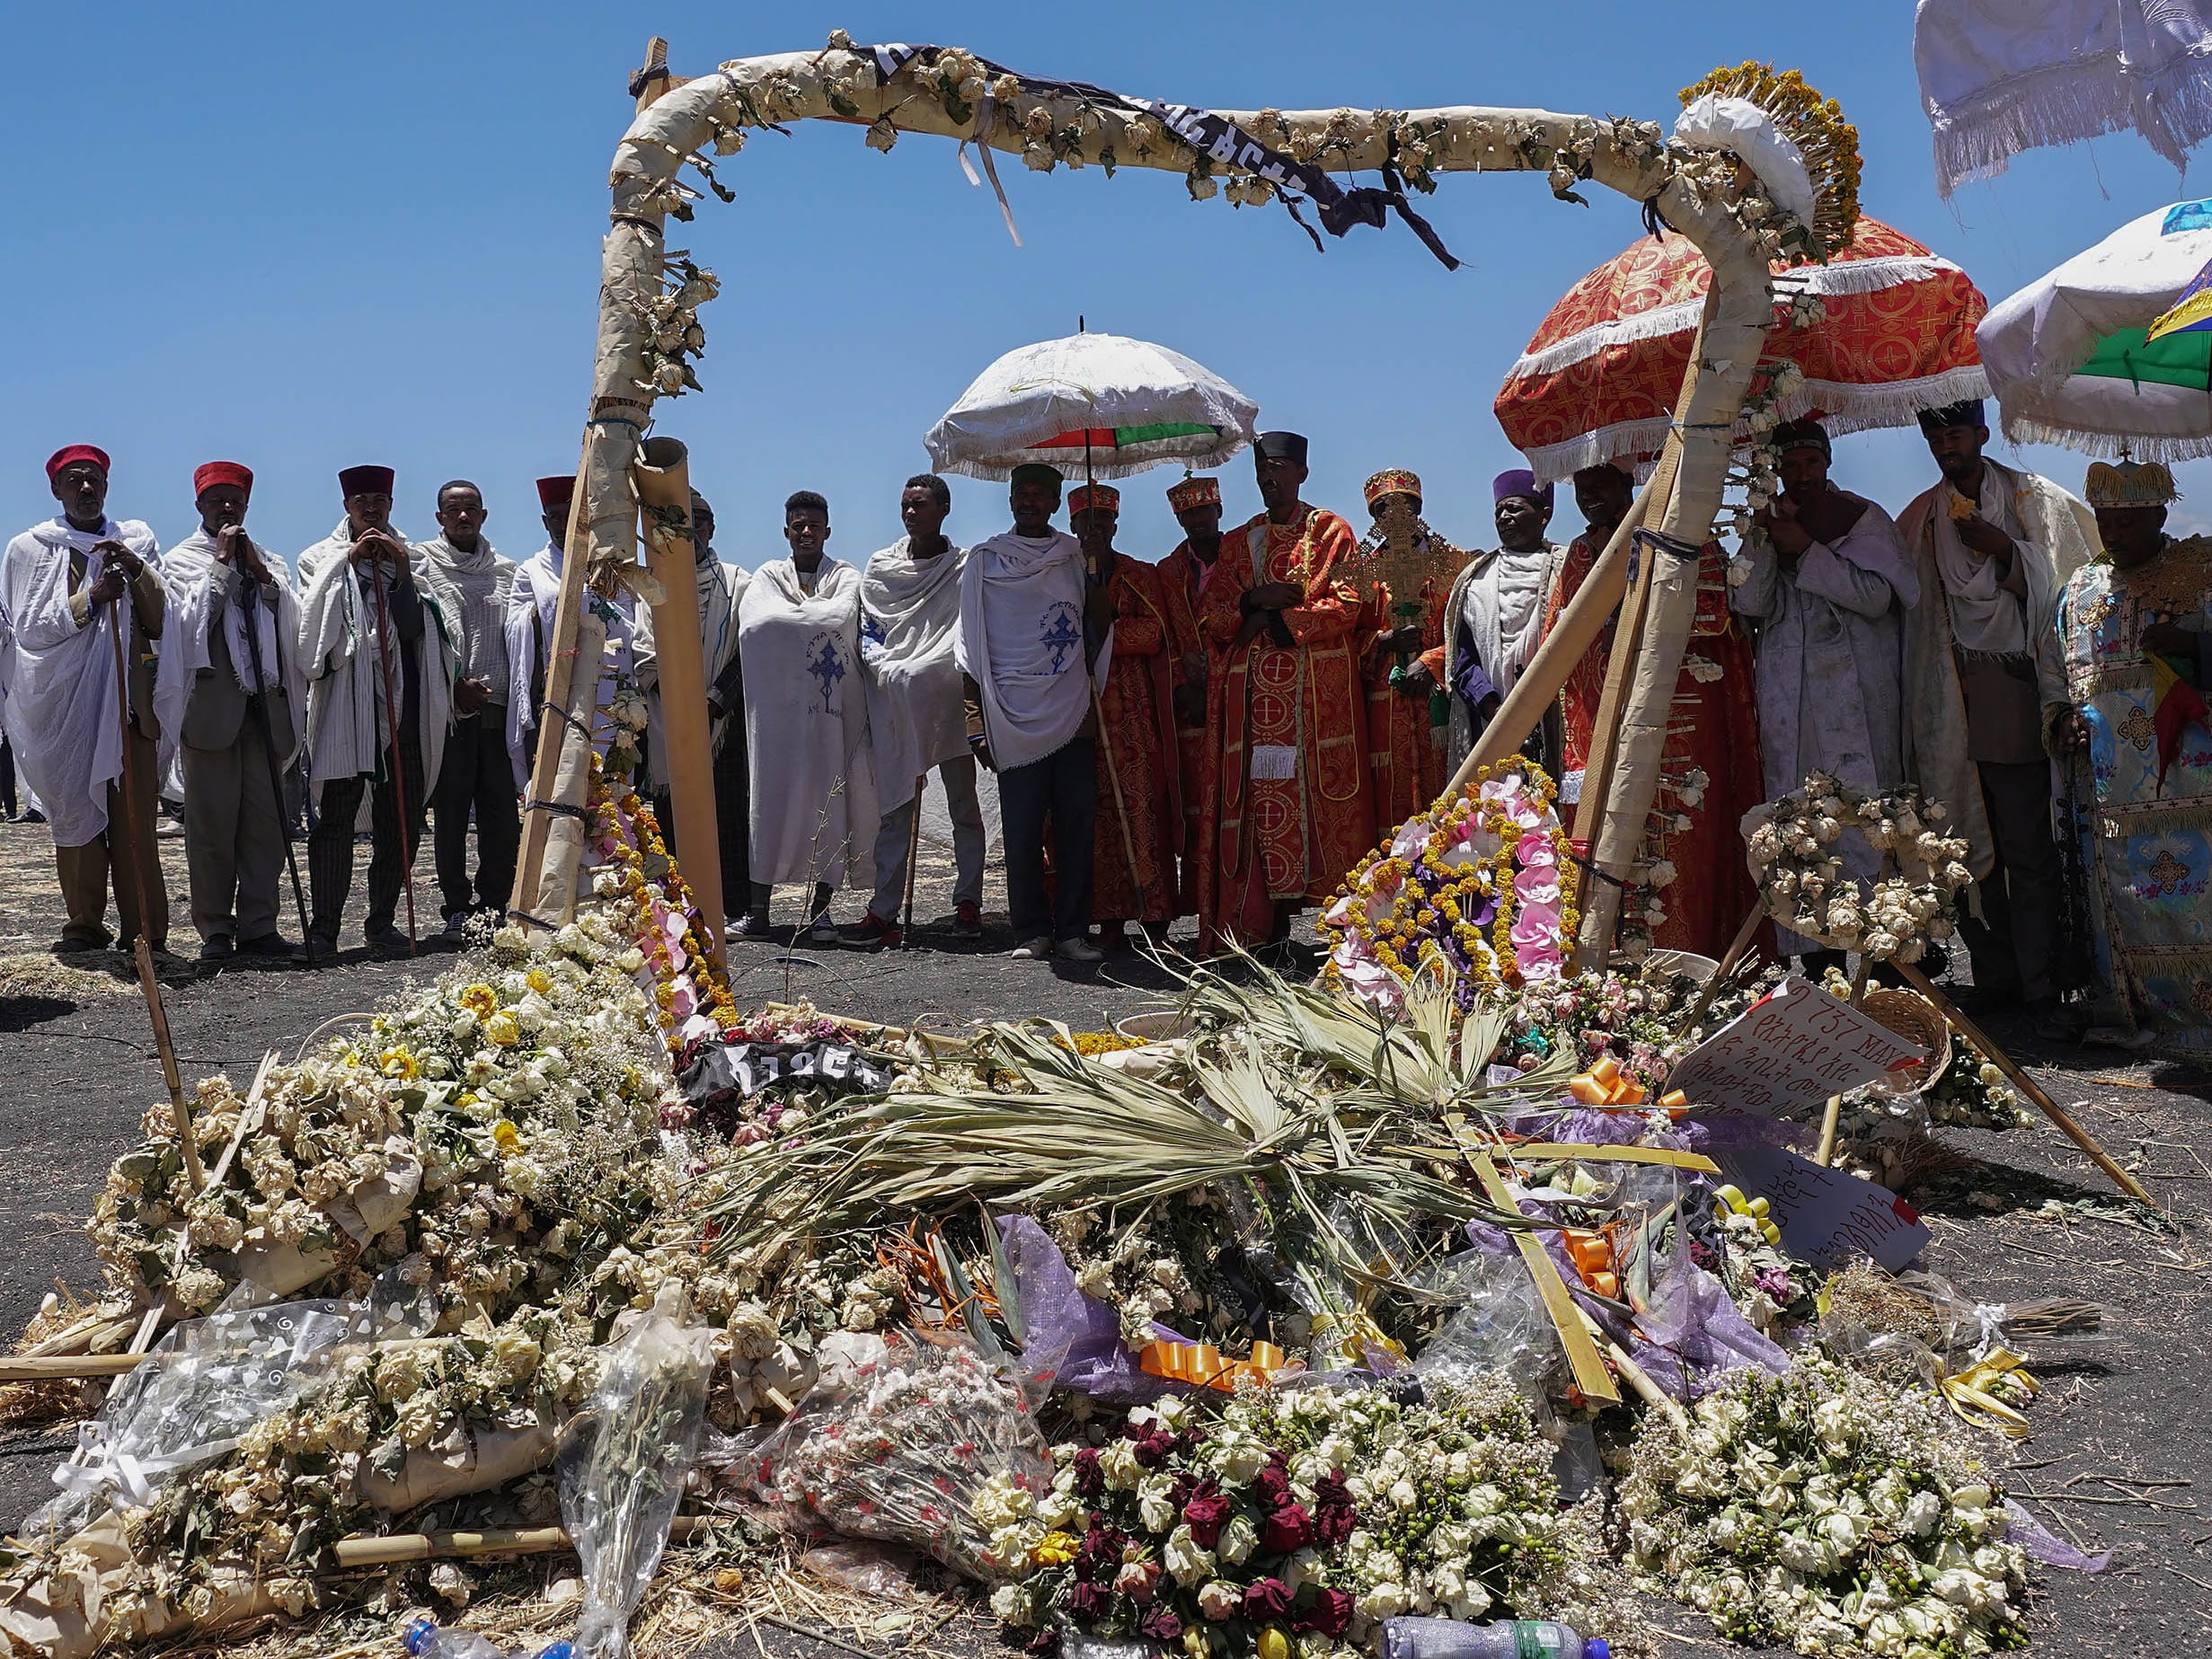 Priest from the Ethiopian Orthodox Church pray and sing during the Asrahhullet or Tulluferra ceremony on March 21, 2019 in Ejere, Ethiopia.